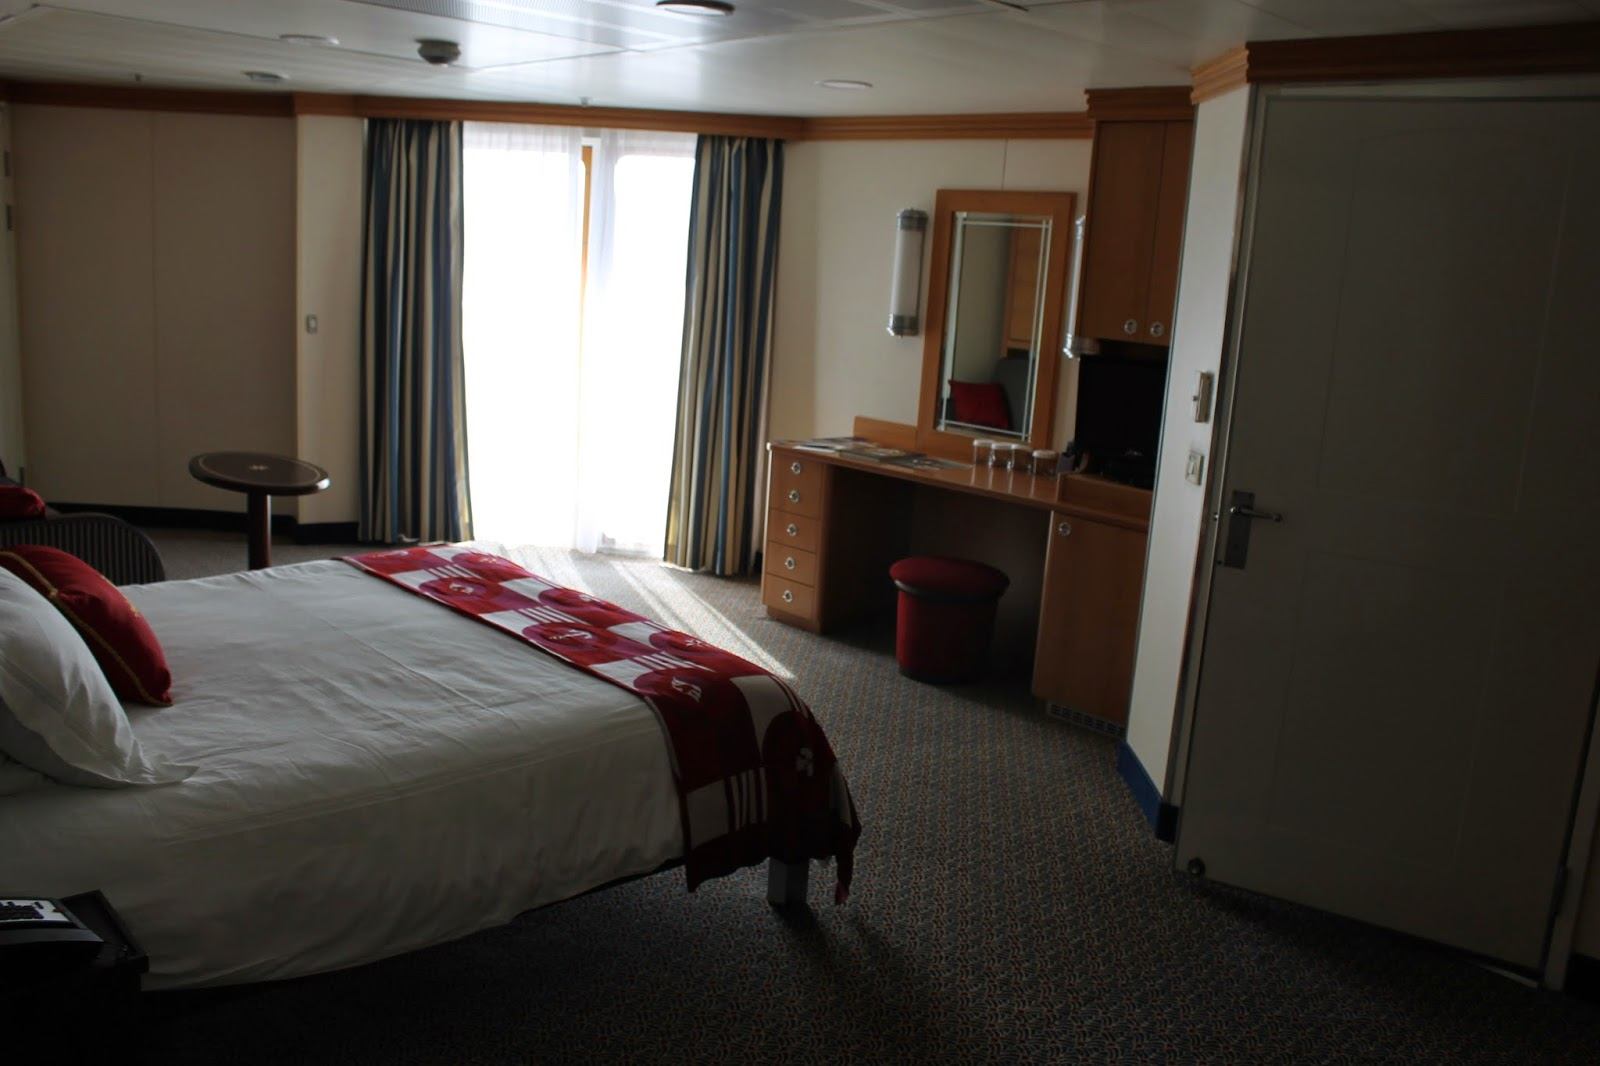 Disney Cruise Line Handicap Accessible Stateroom